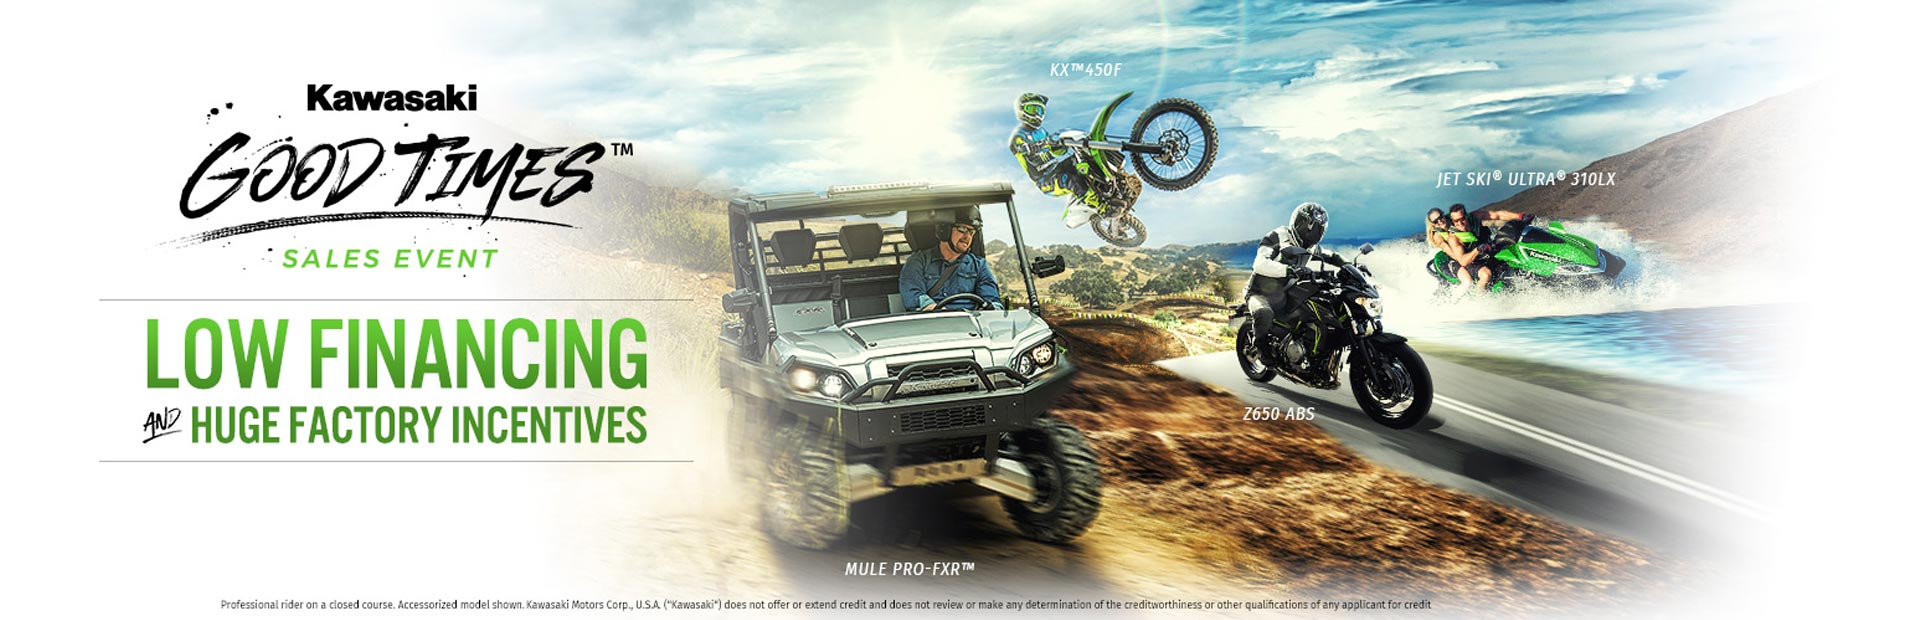 Kawasaki: Good Times™ Sales Event